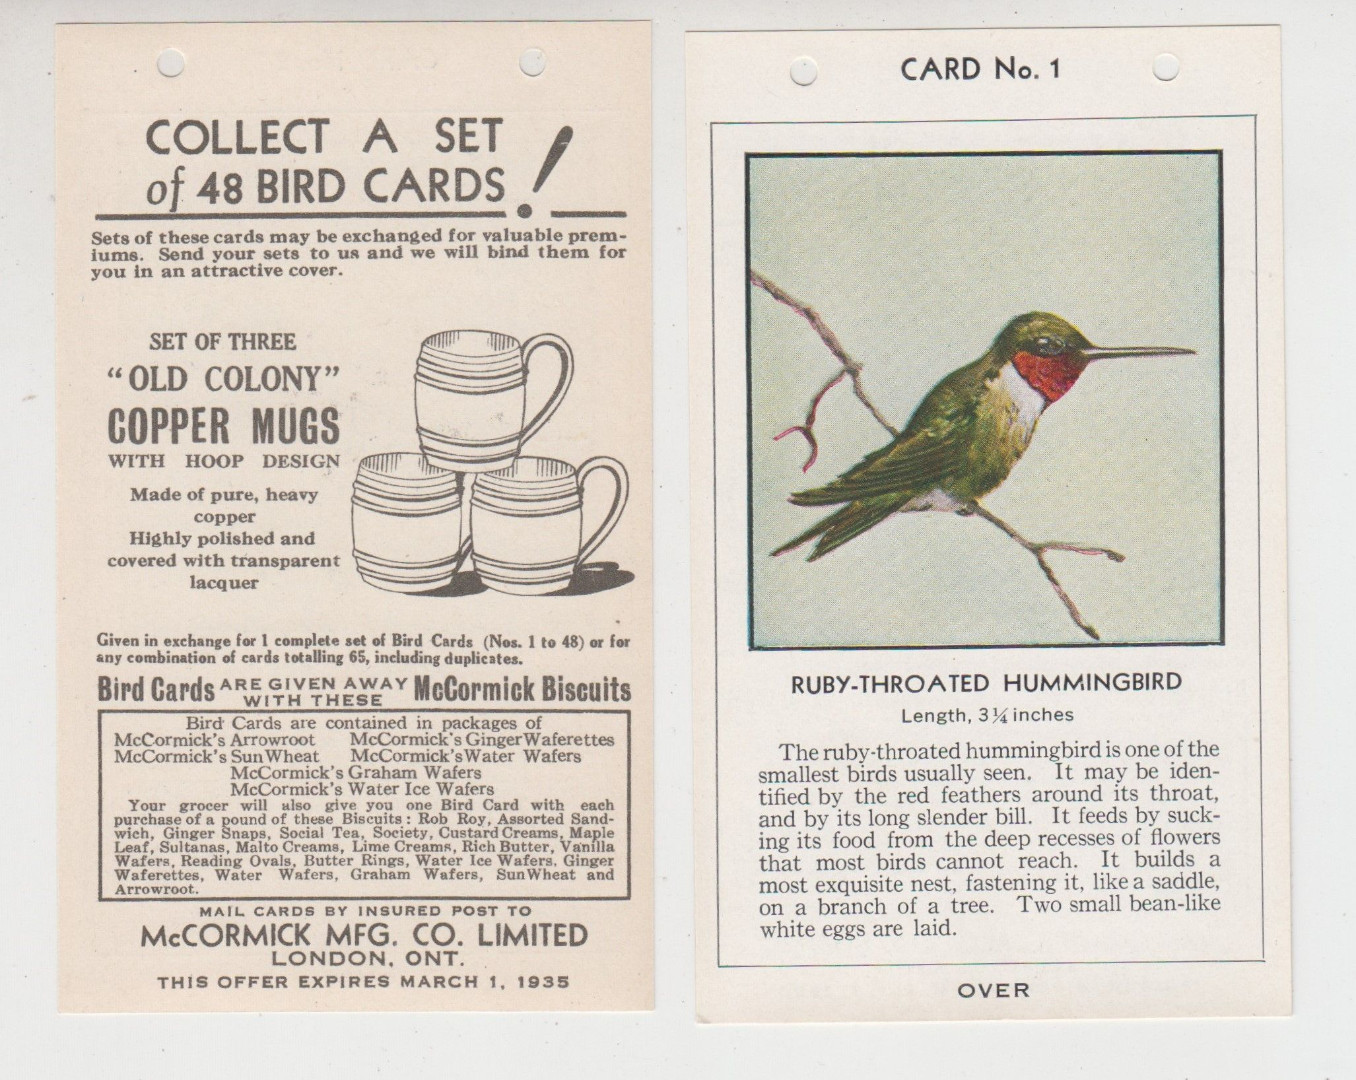 McCormick's Biscuits Colour redeemed cards.jpg